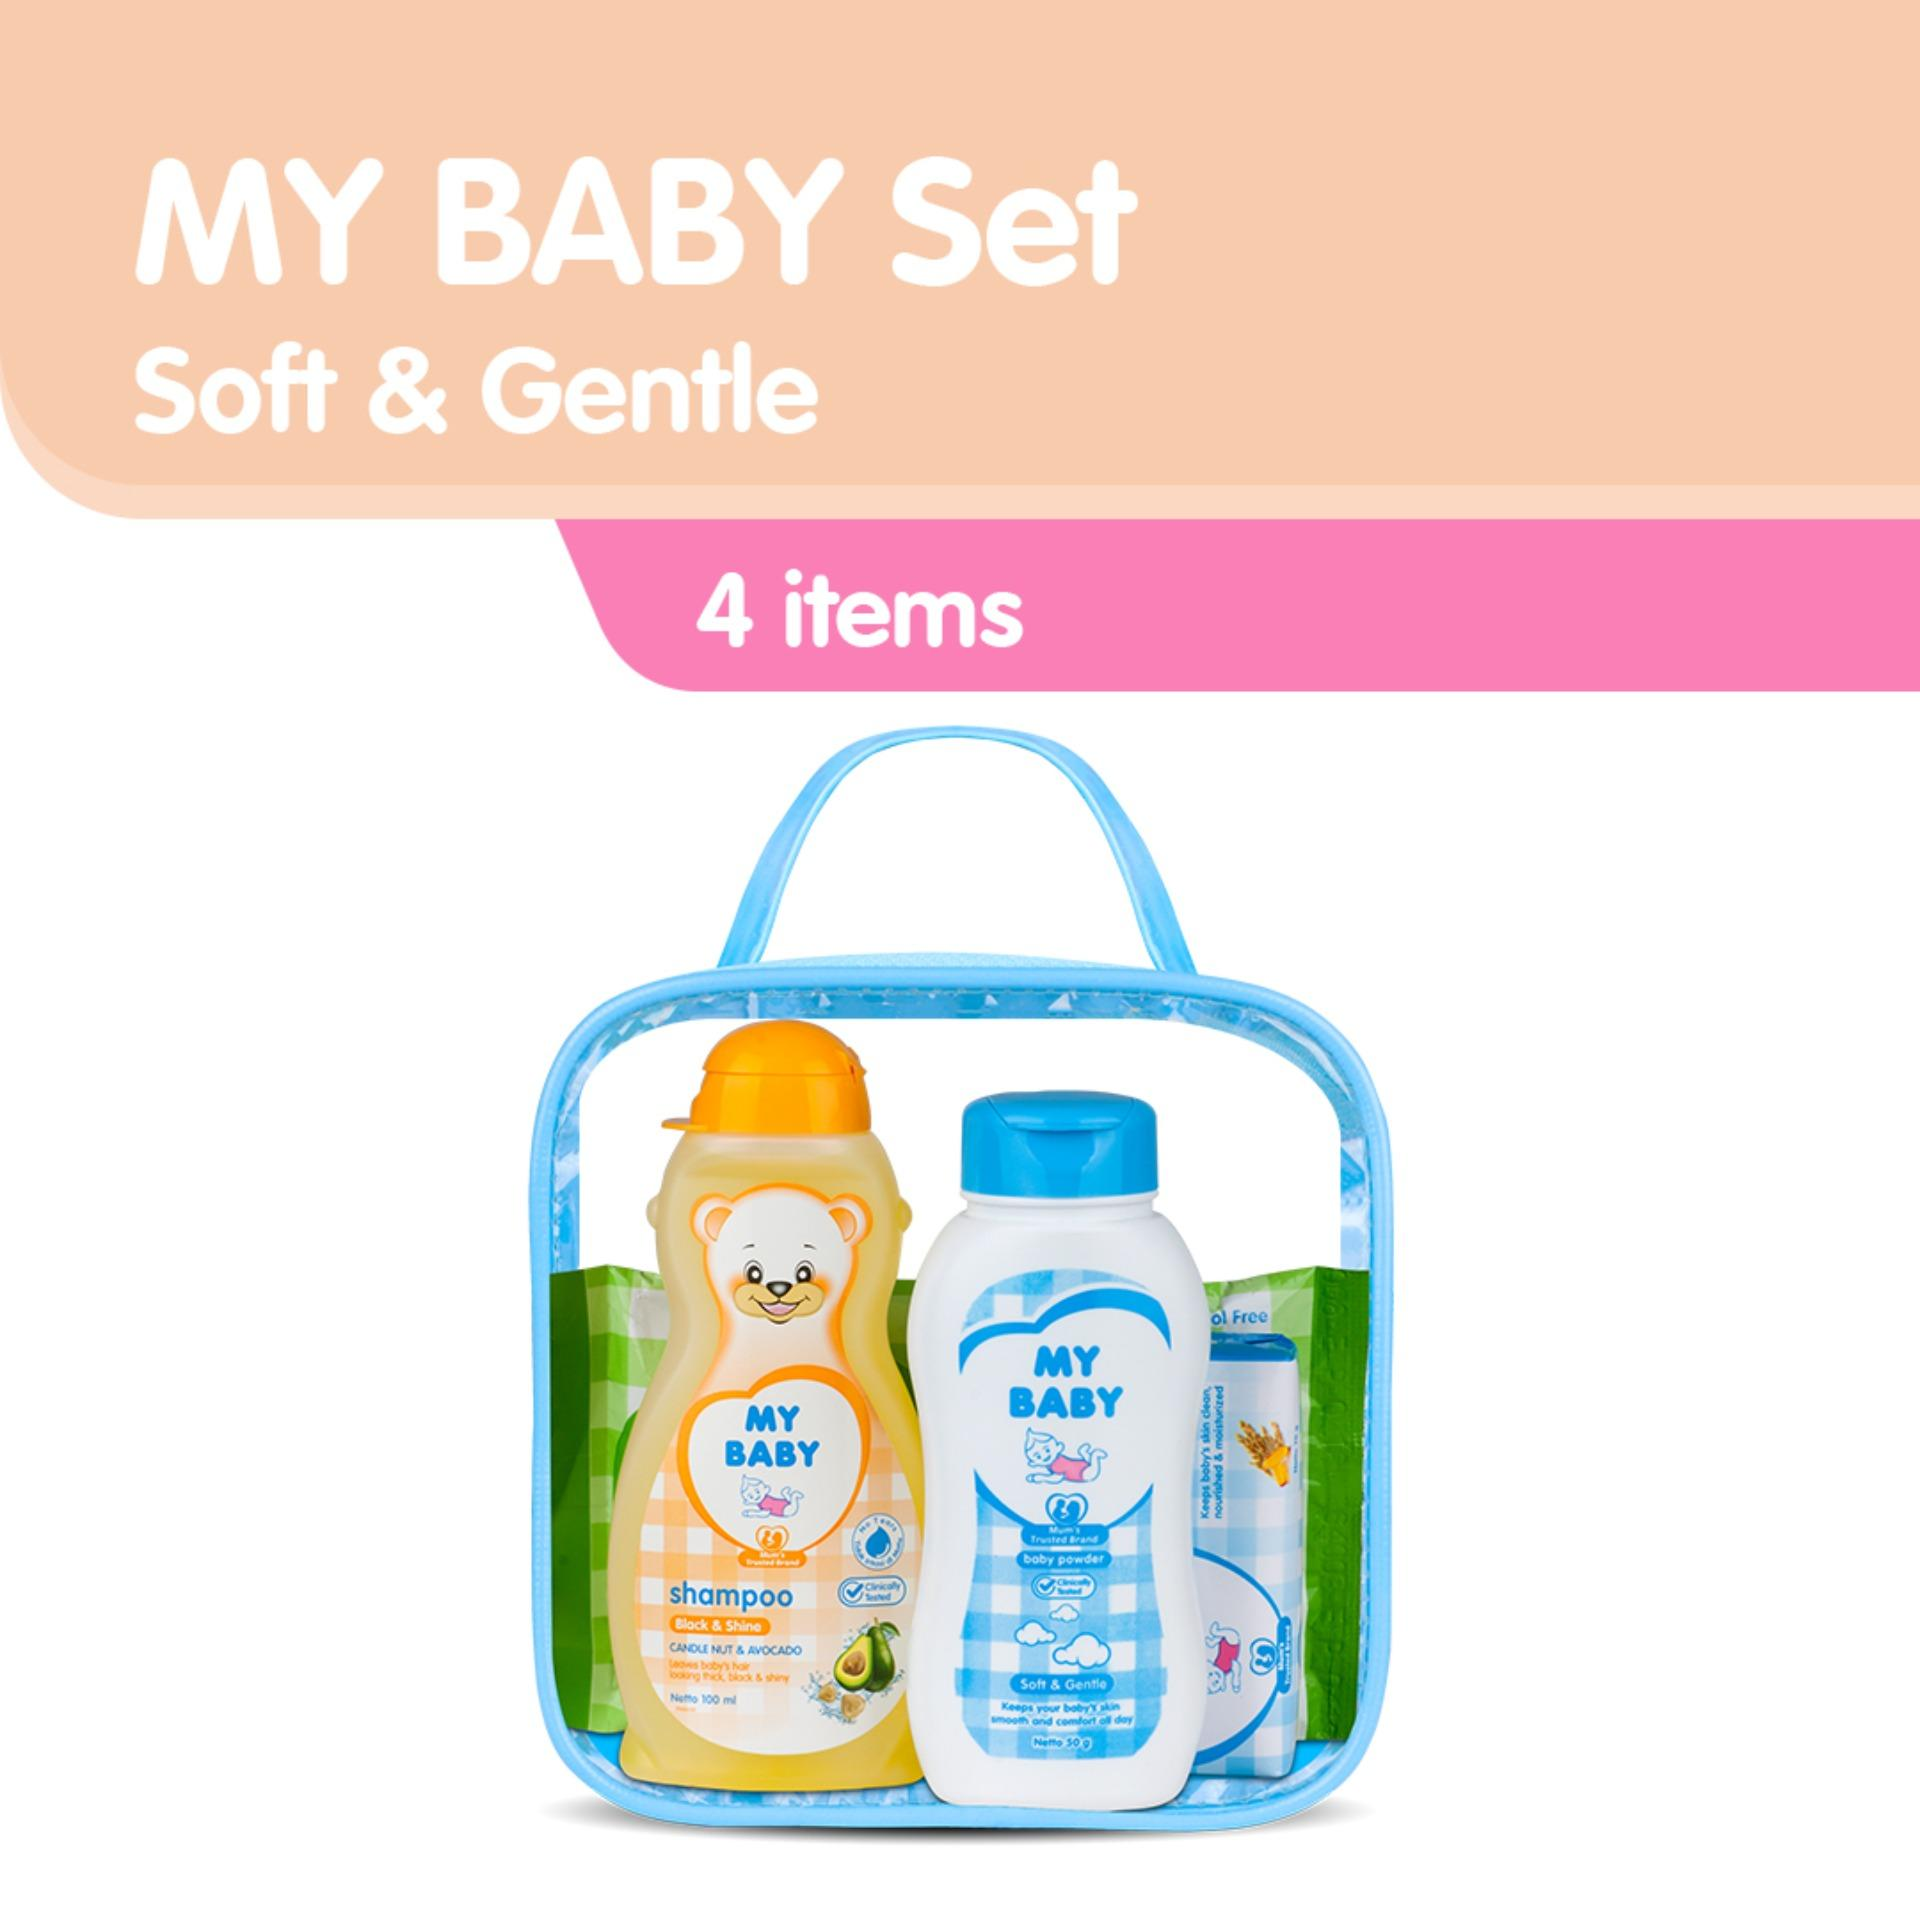 My Baby Set Soft & Gentle Perlengkapan Bayi By My Baby Official Store